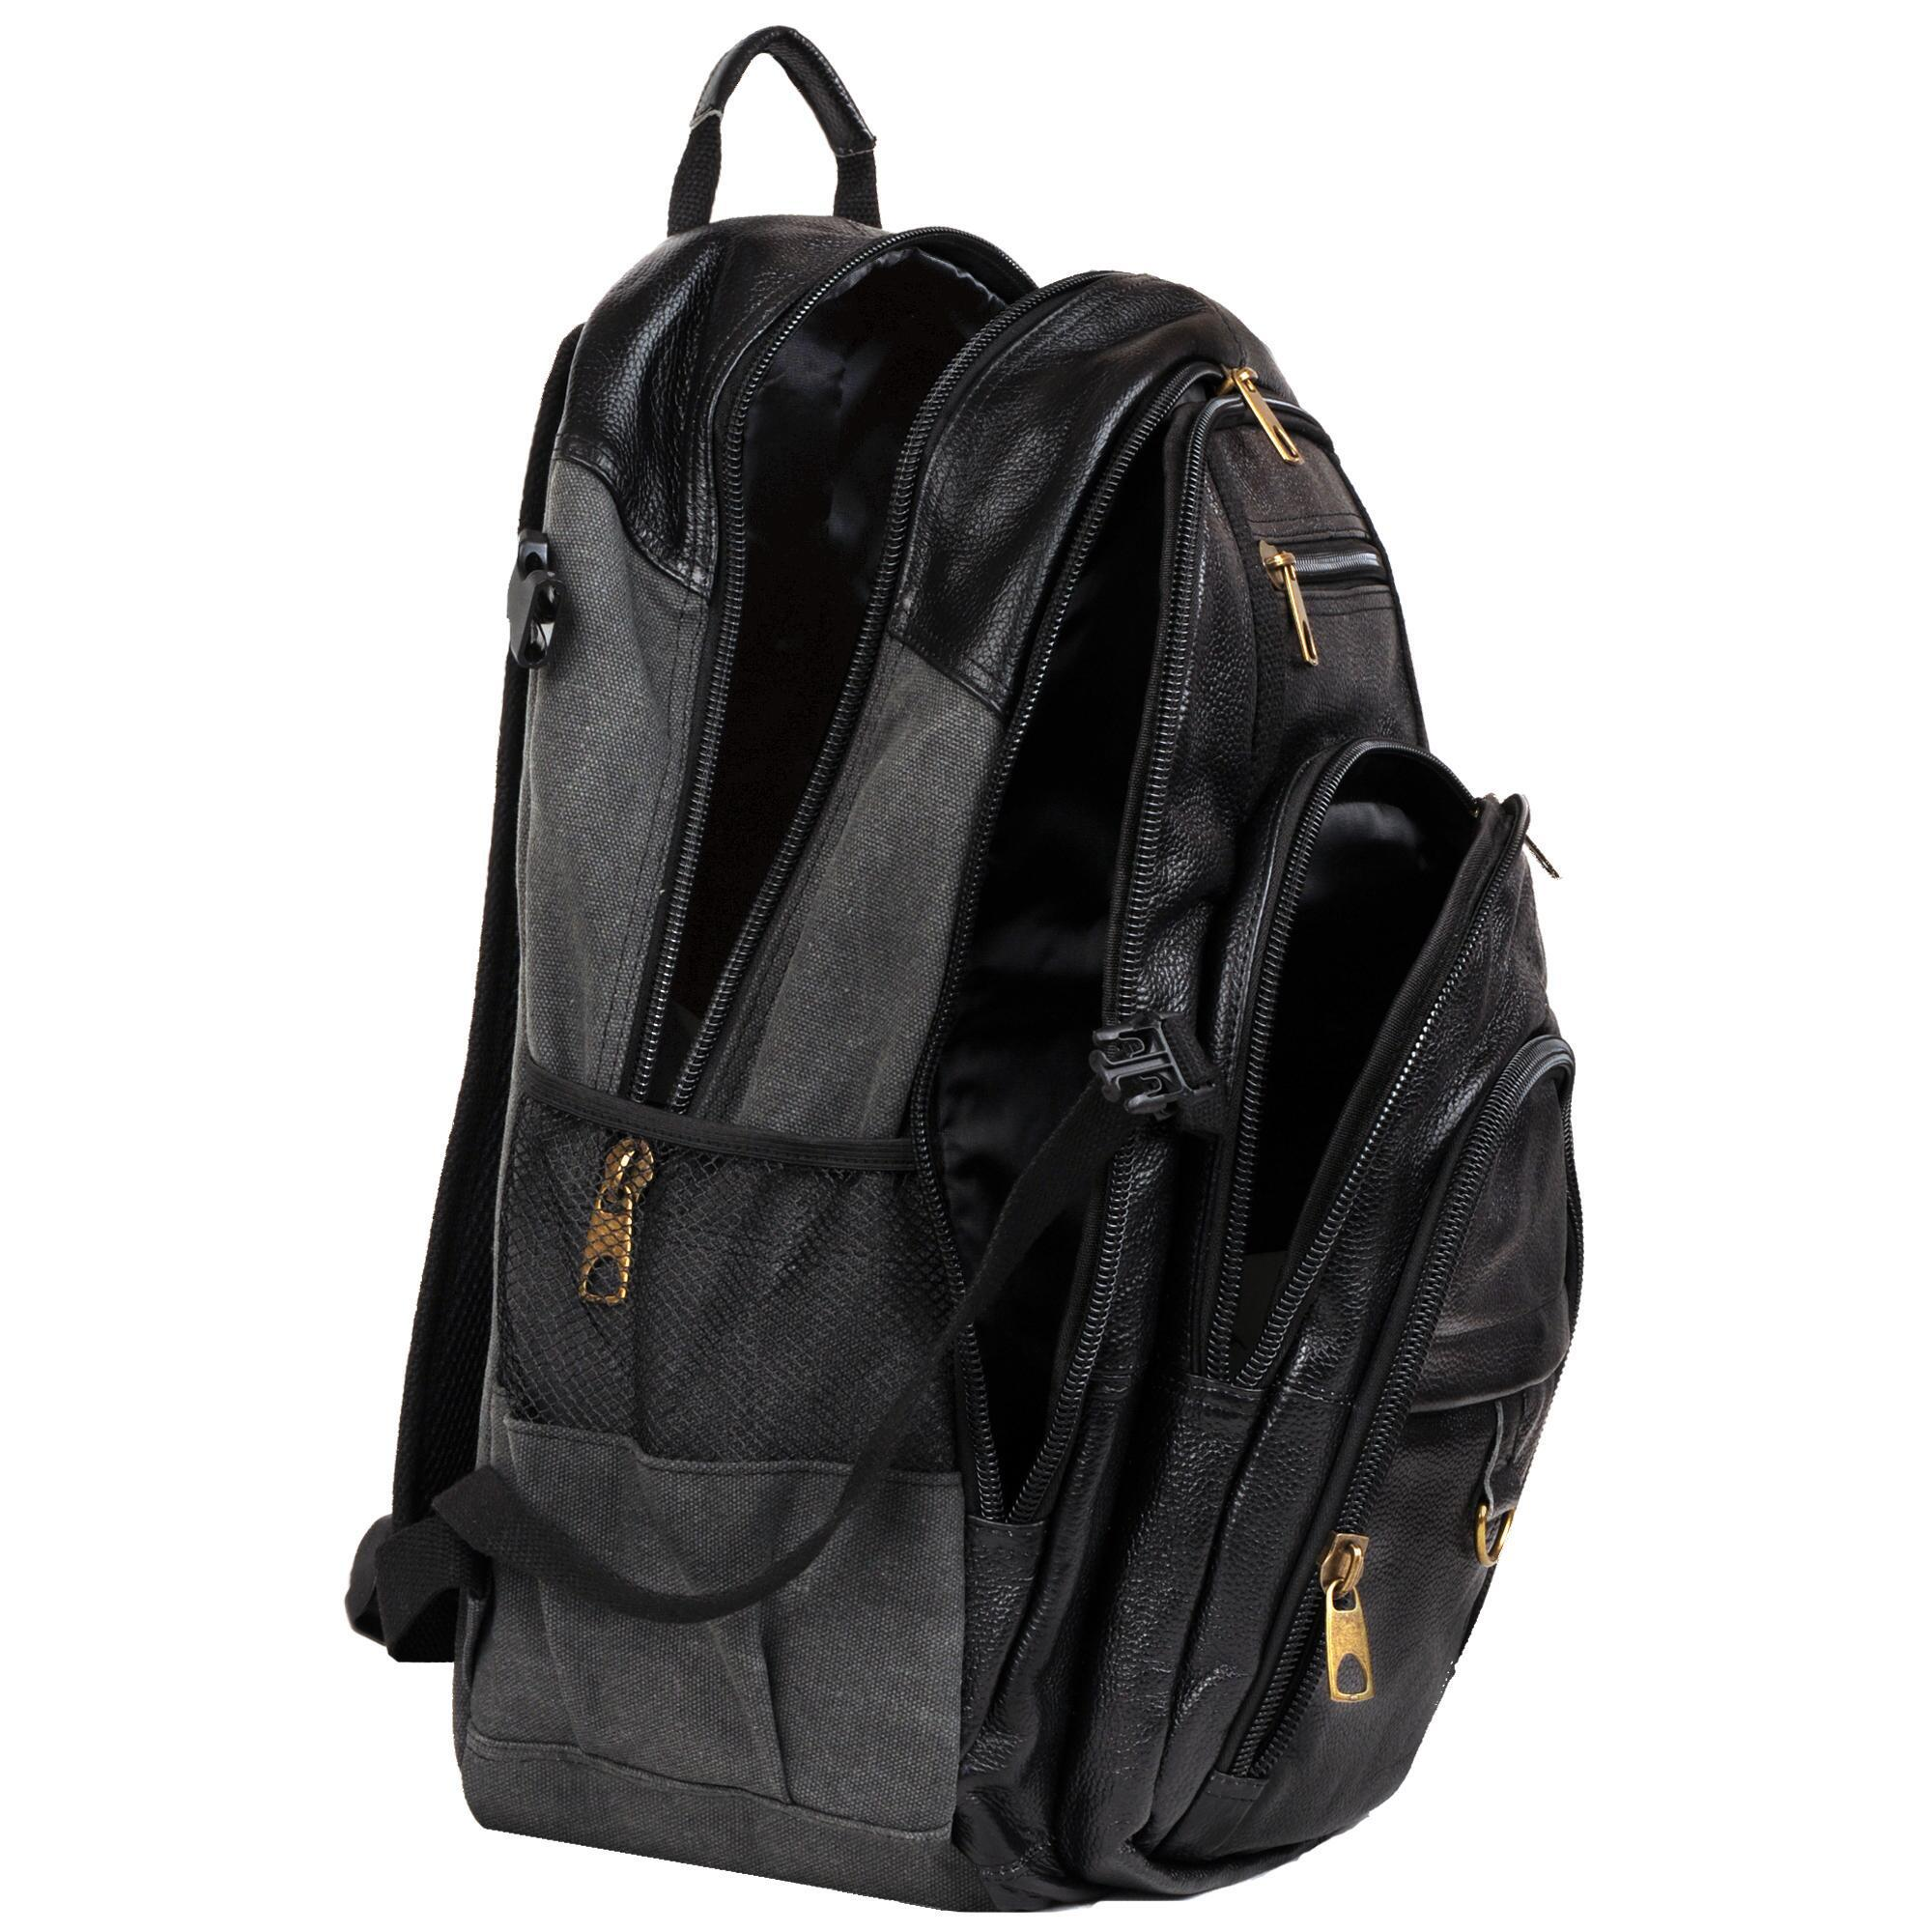 6a5edac3deb6 Wilsons Leather - Black Hunter Laptop Compatible Canvas leather Backpack  for Men - Lyst. View fullscreen